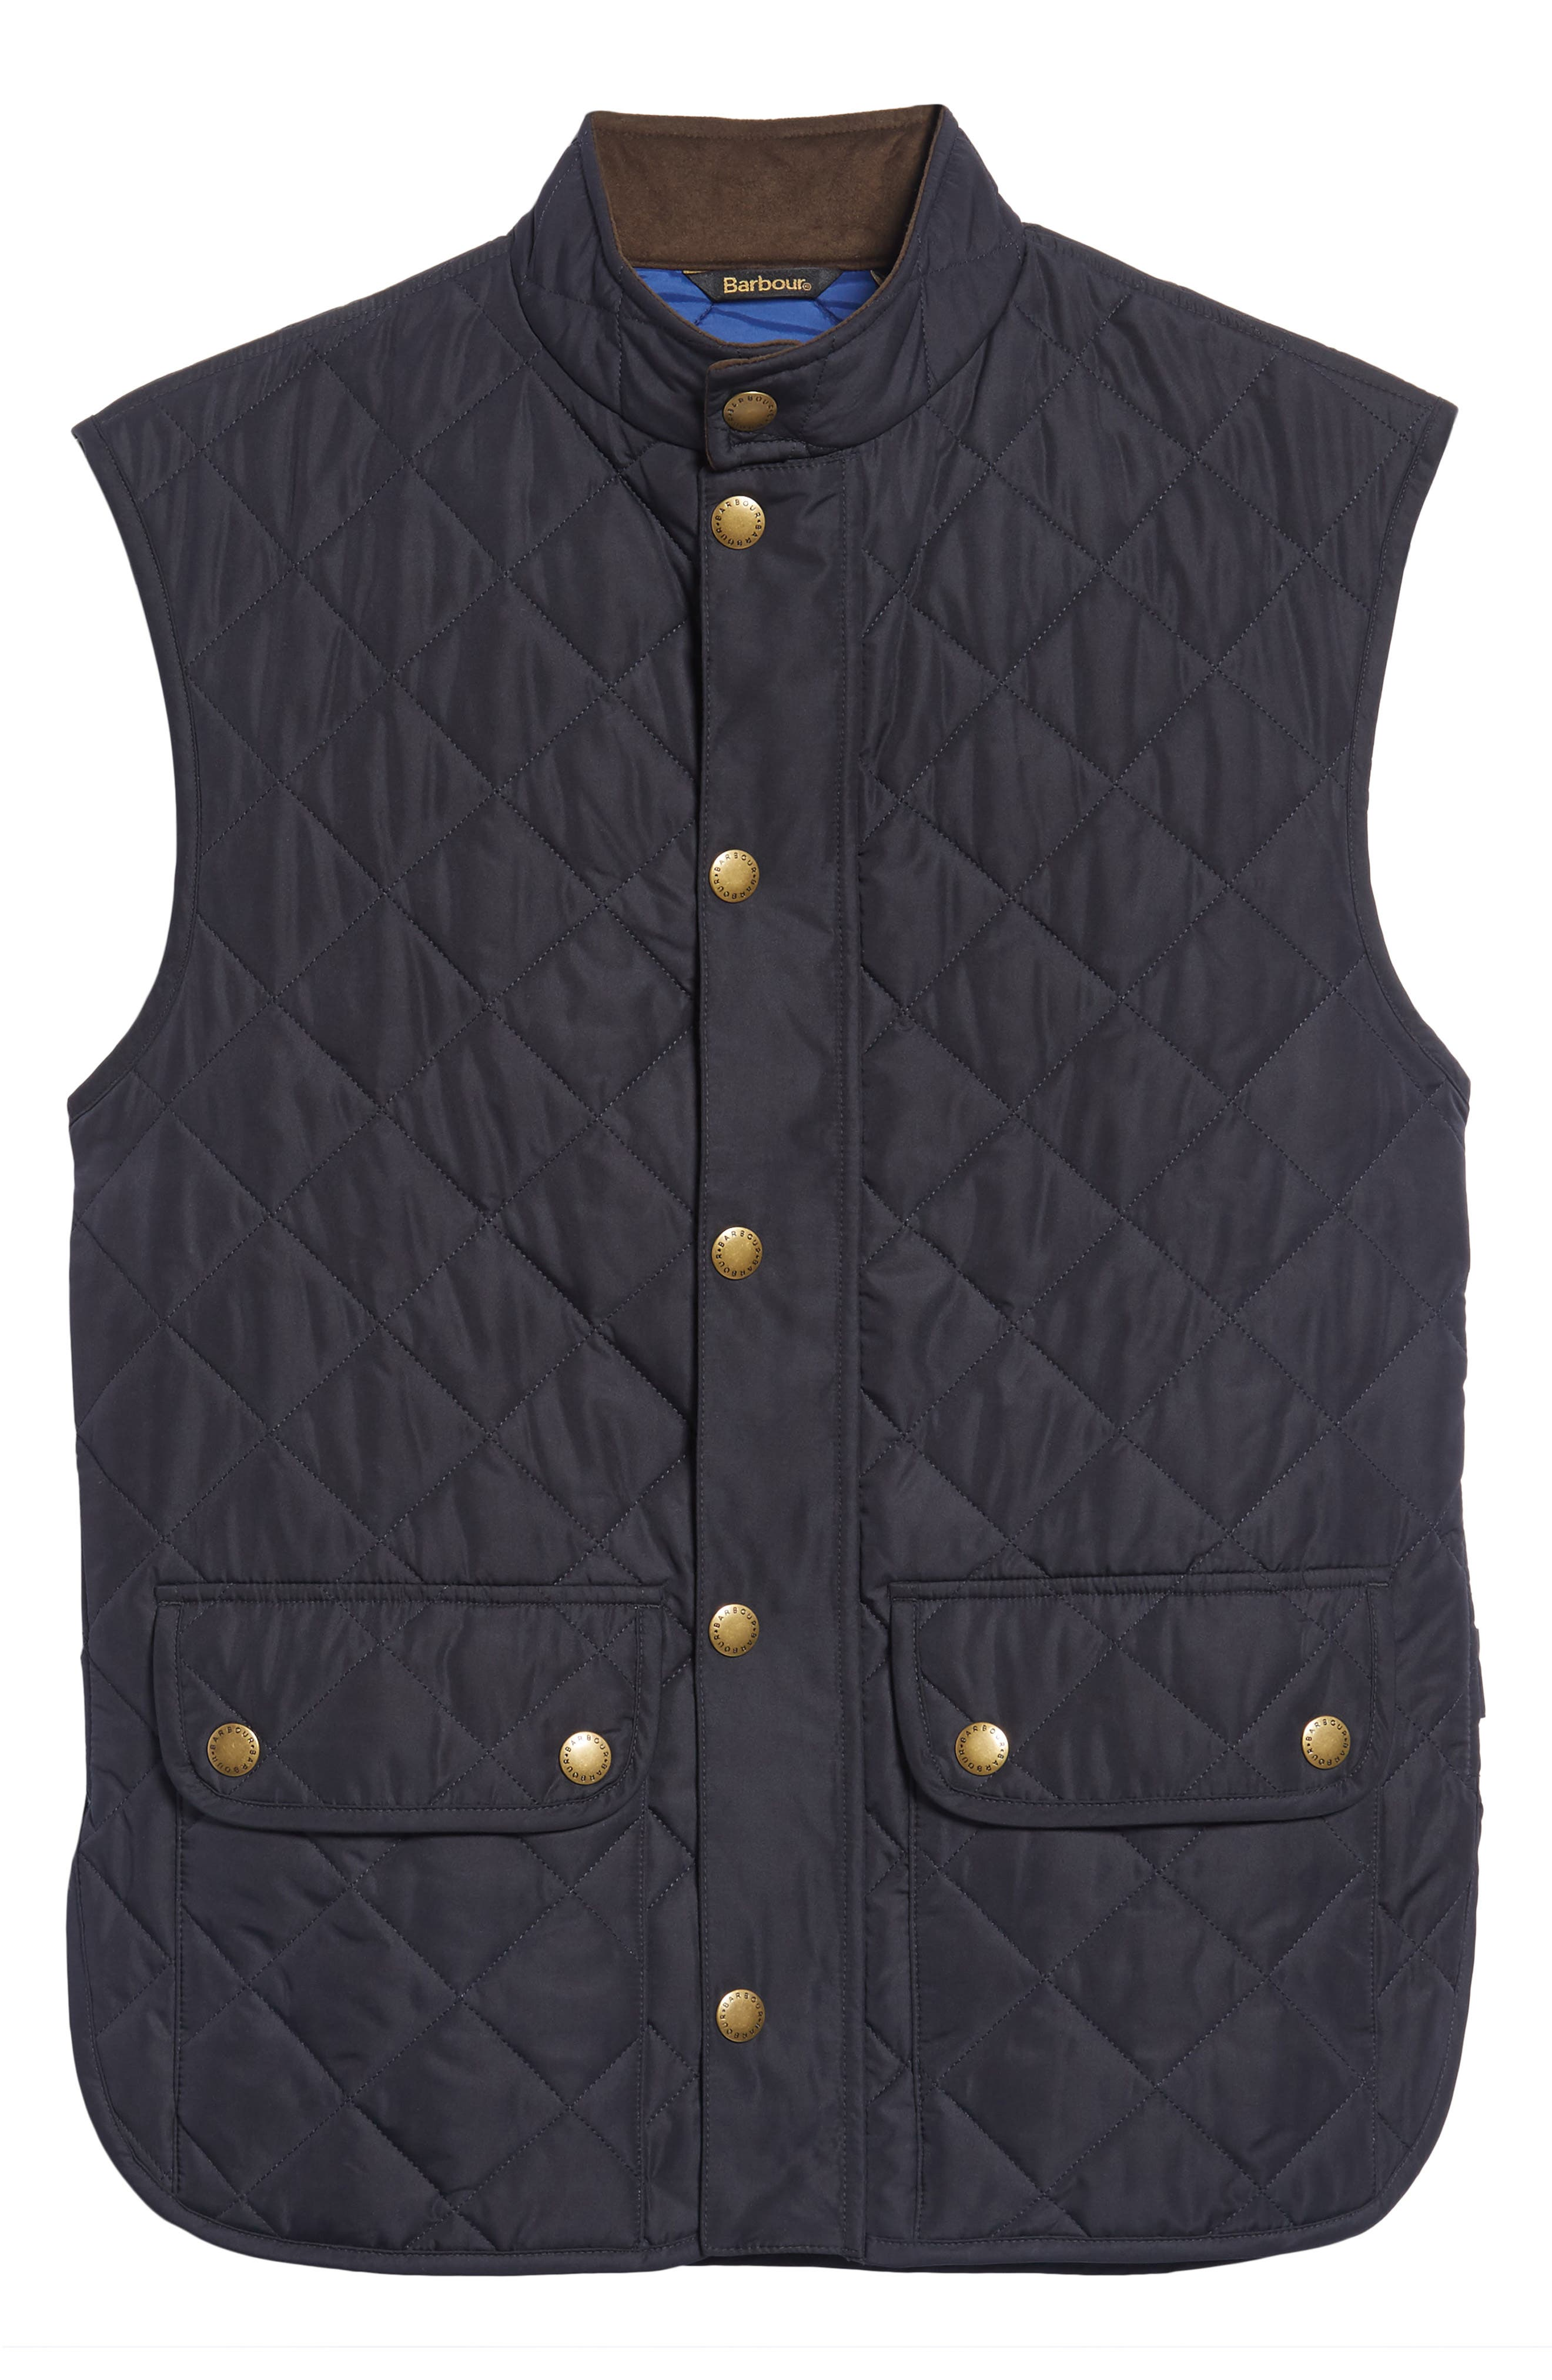 Lowerdale Quilted Vest,                         Main,                         color, Navy/ Atlantic